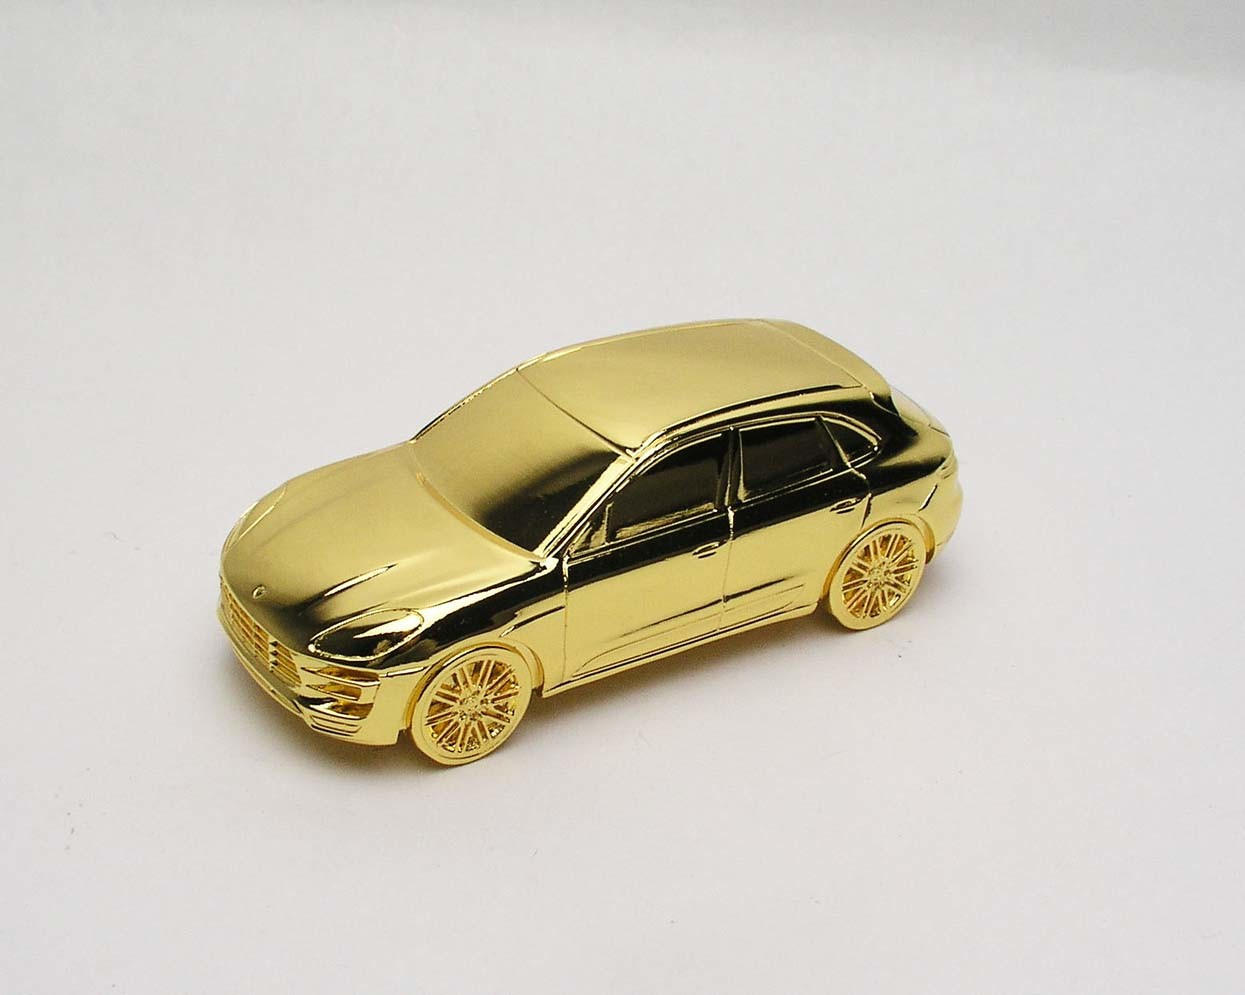 Zinc Alloy with Gold Plated Collection Model Car